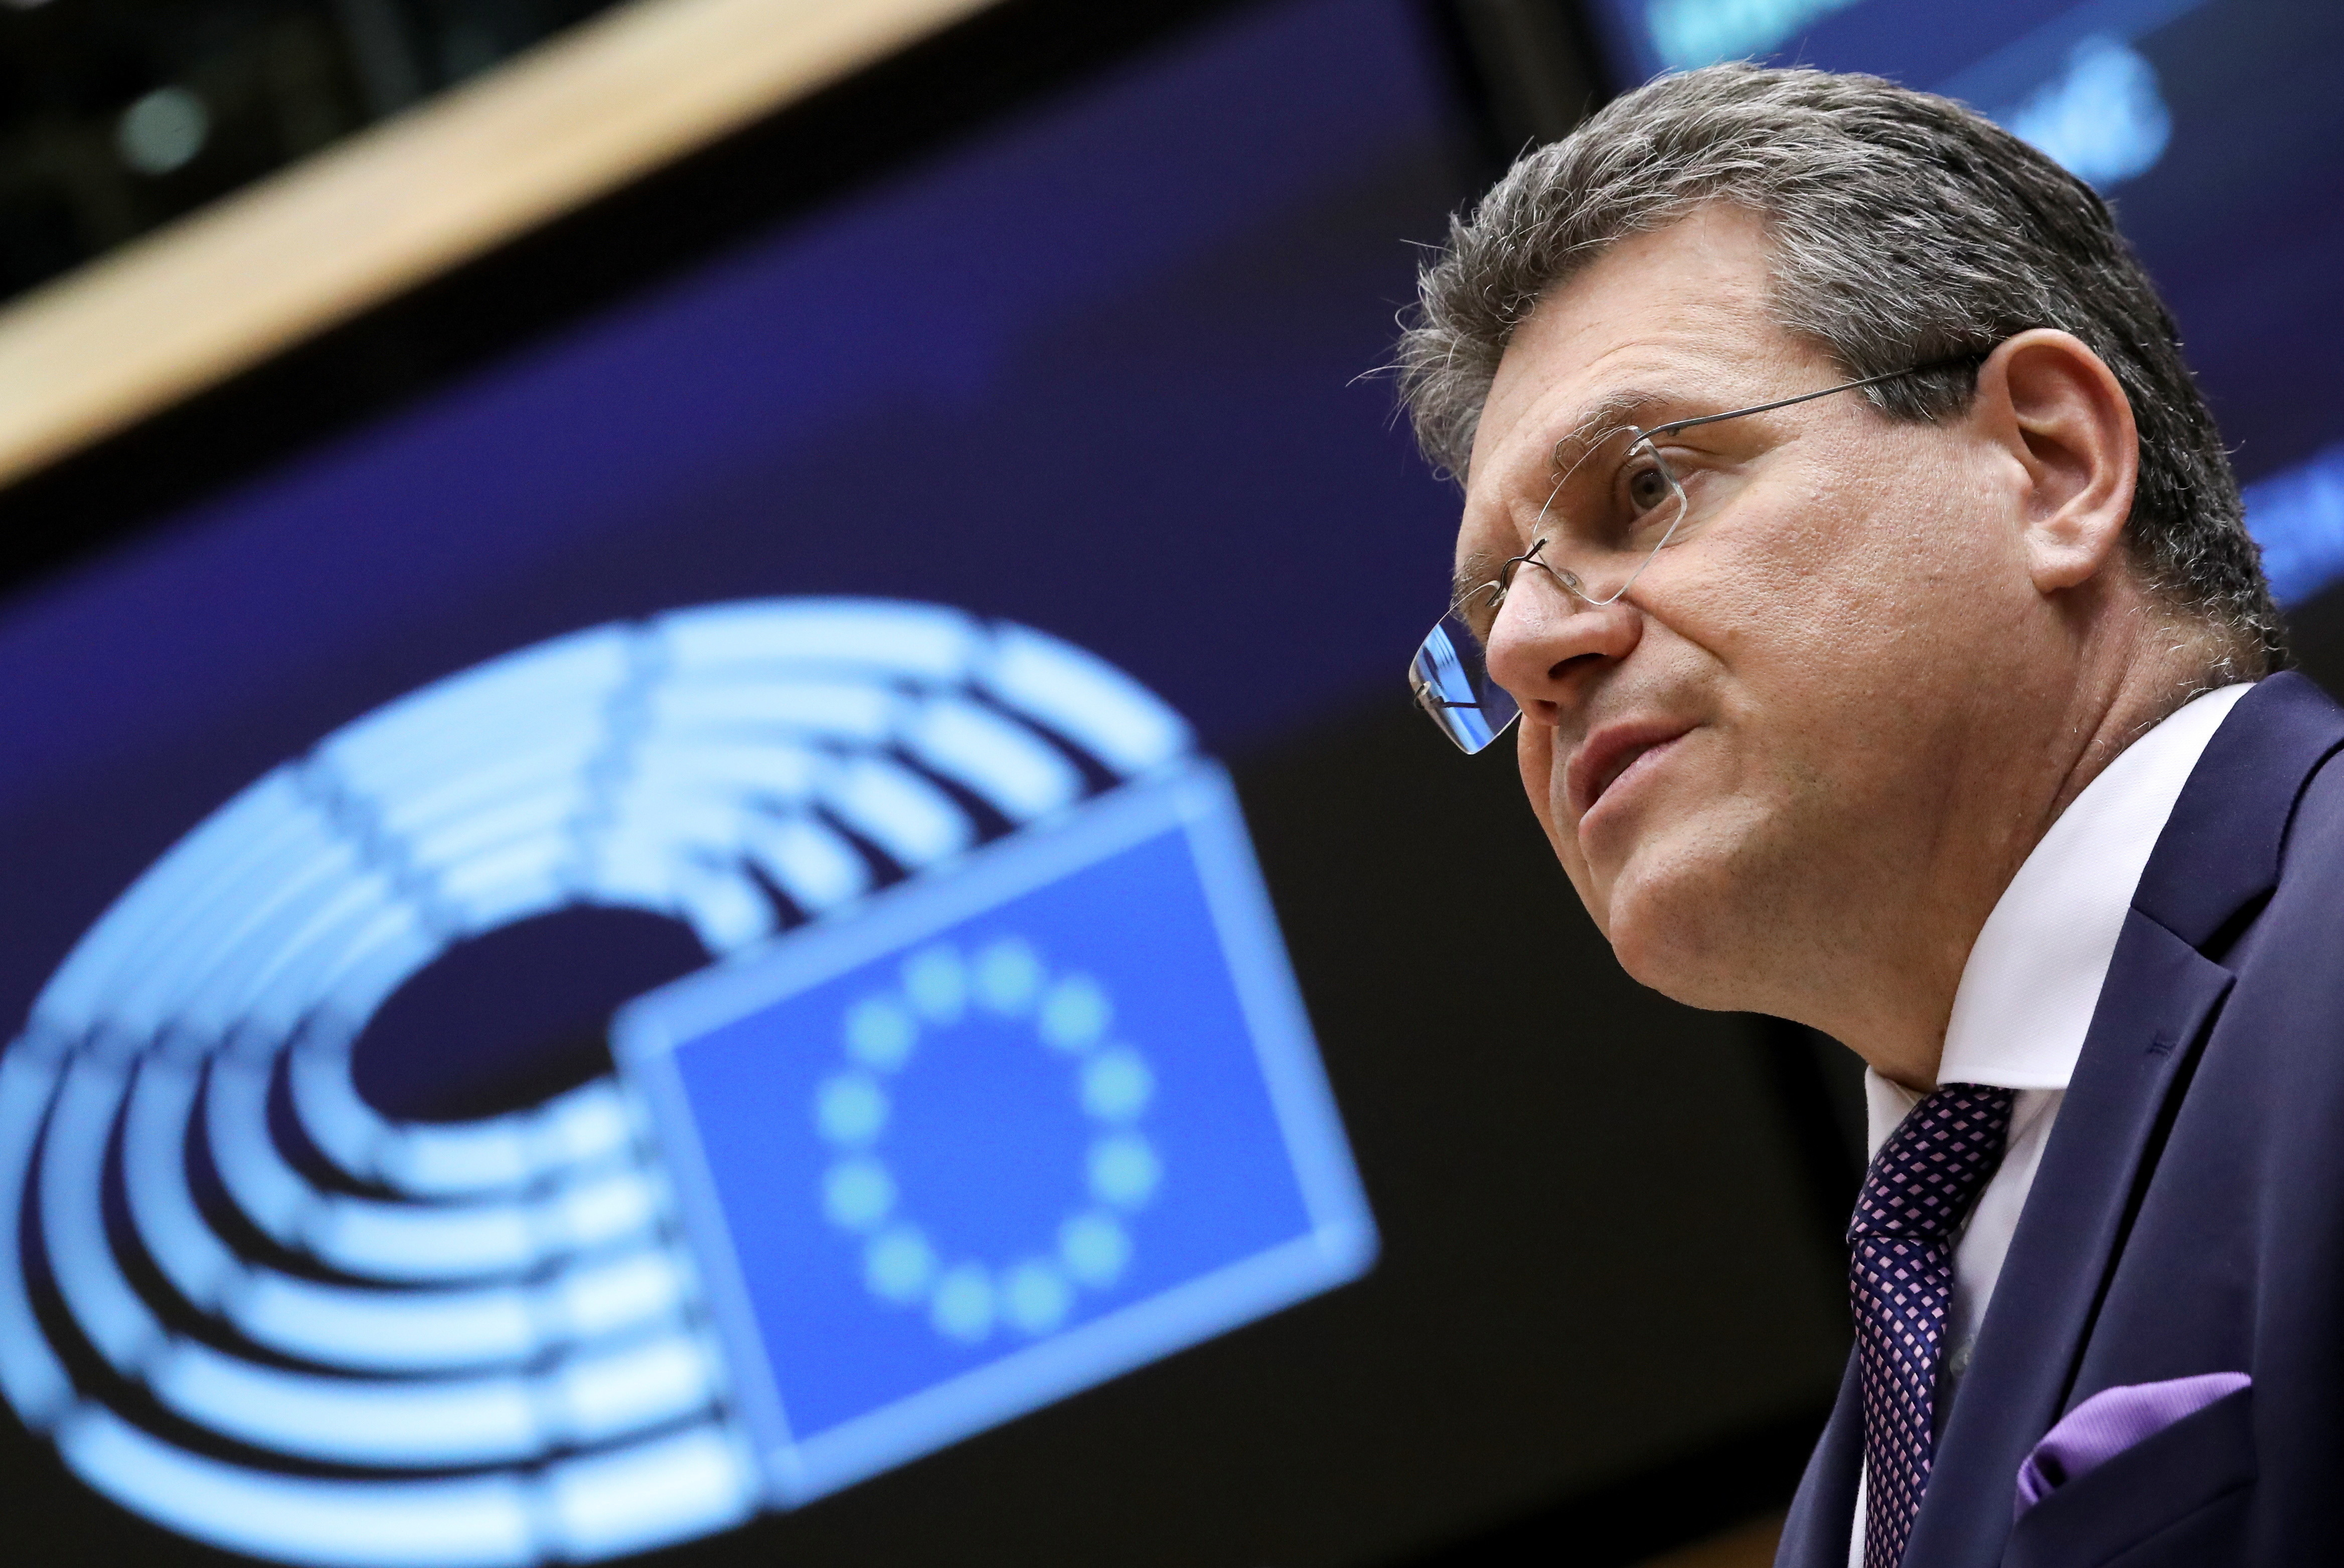 European Commission Vice President Maros Sefcovic addresses the EU Parliament in Brussels, Belgium March 25, 2021. REUTERS/Yves Herman/Pool - RC2FIM97SECR